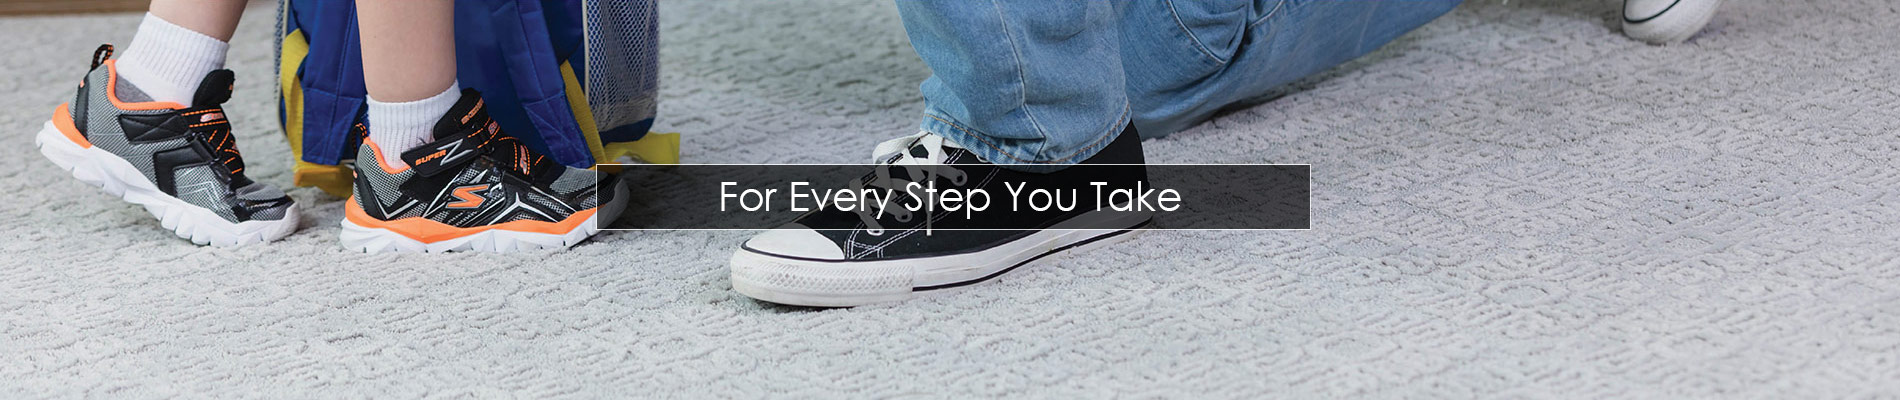 For Every Step You Take